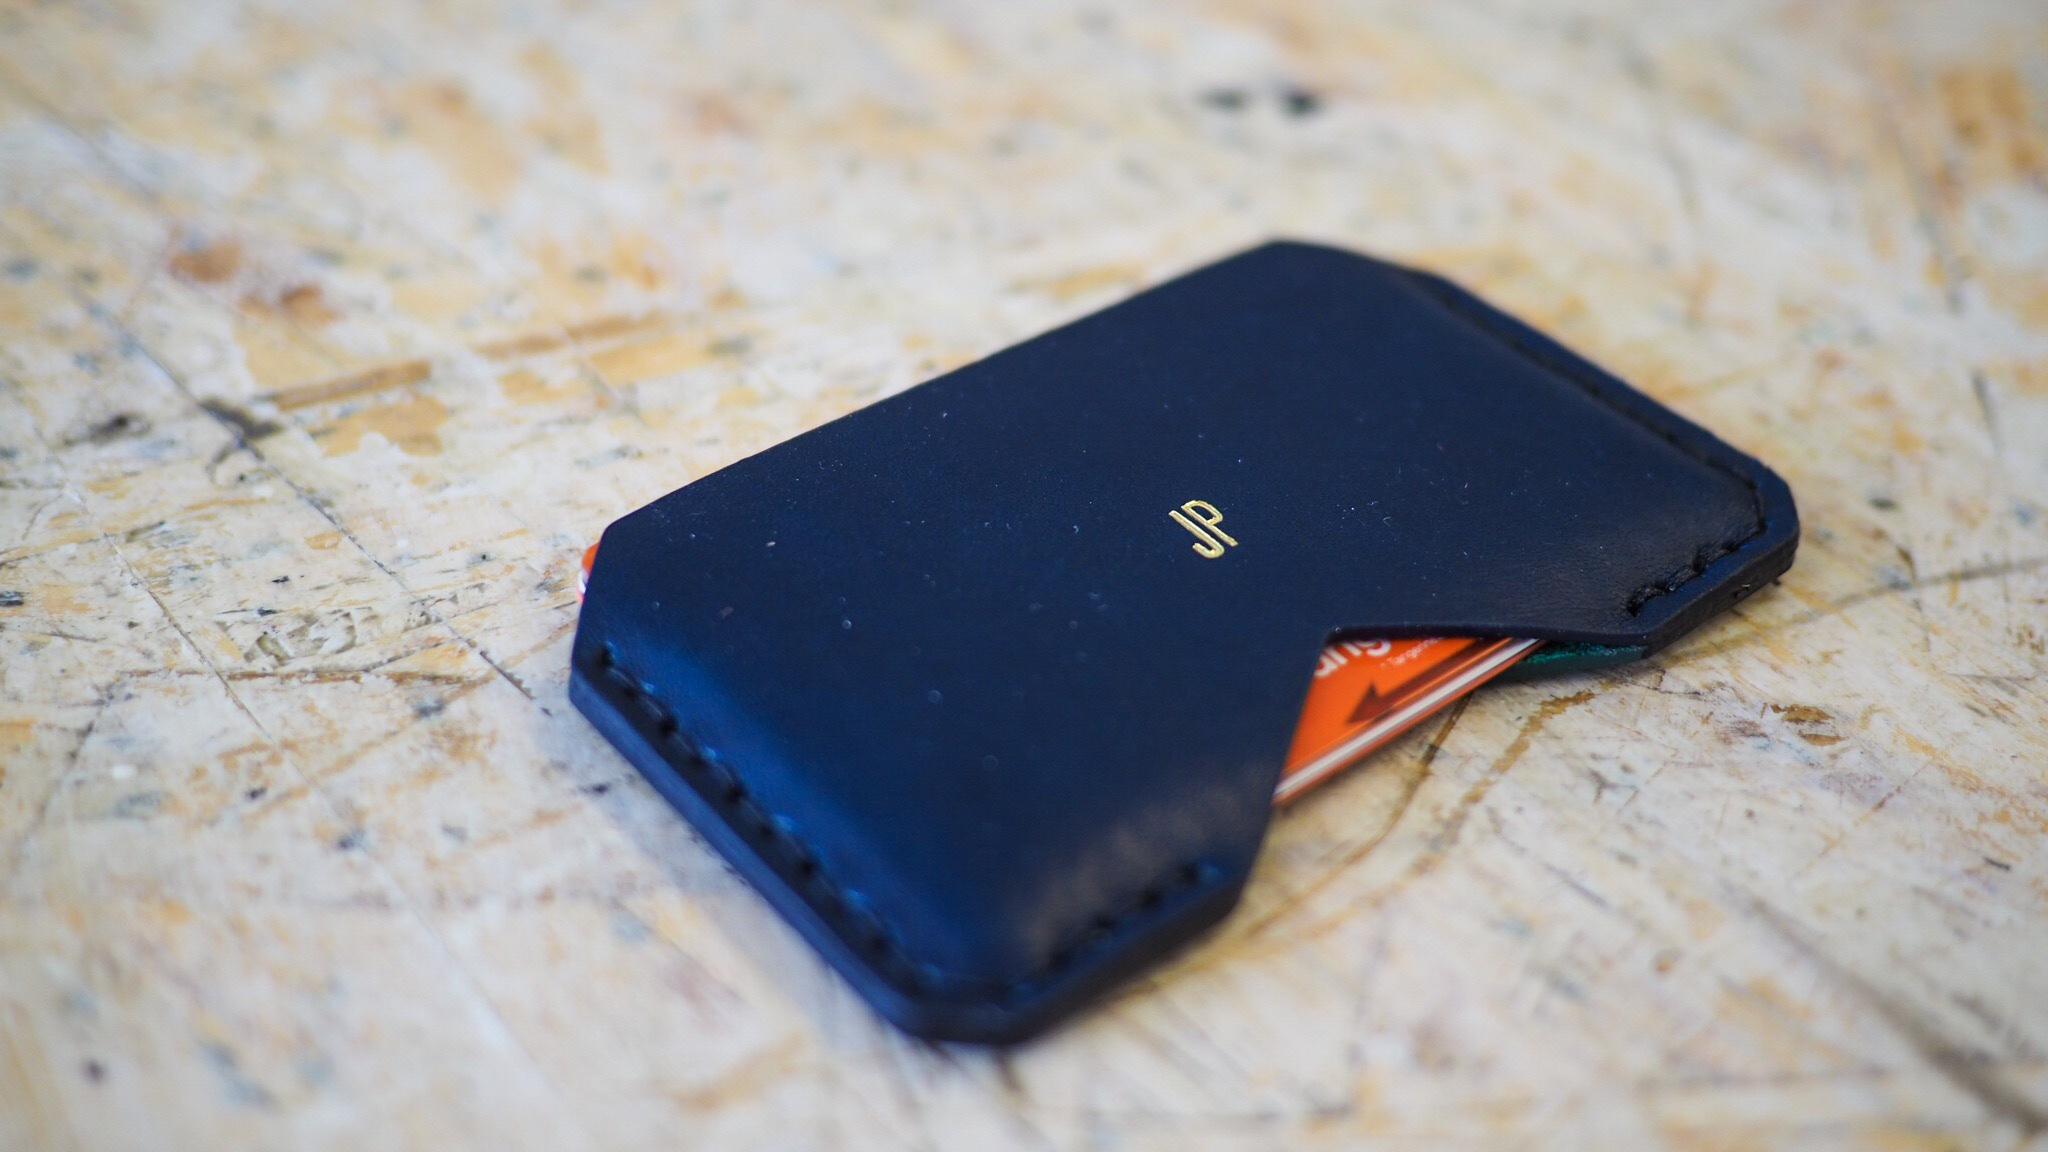 A Montreal Airbnb Experience with Lajoie creating a custom leather cardholder